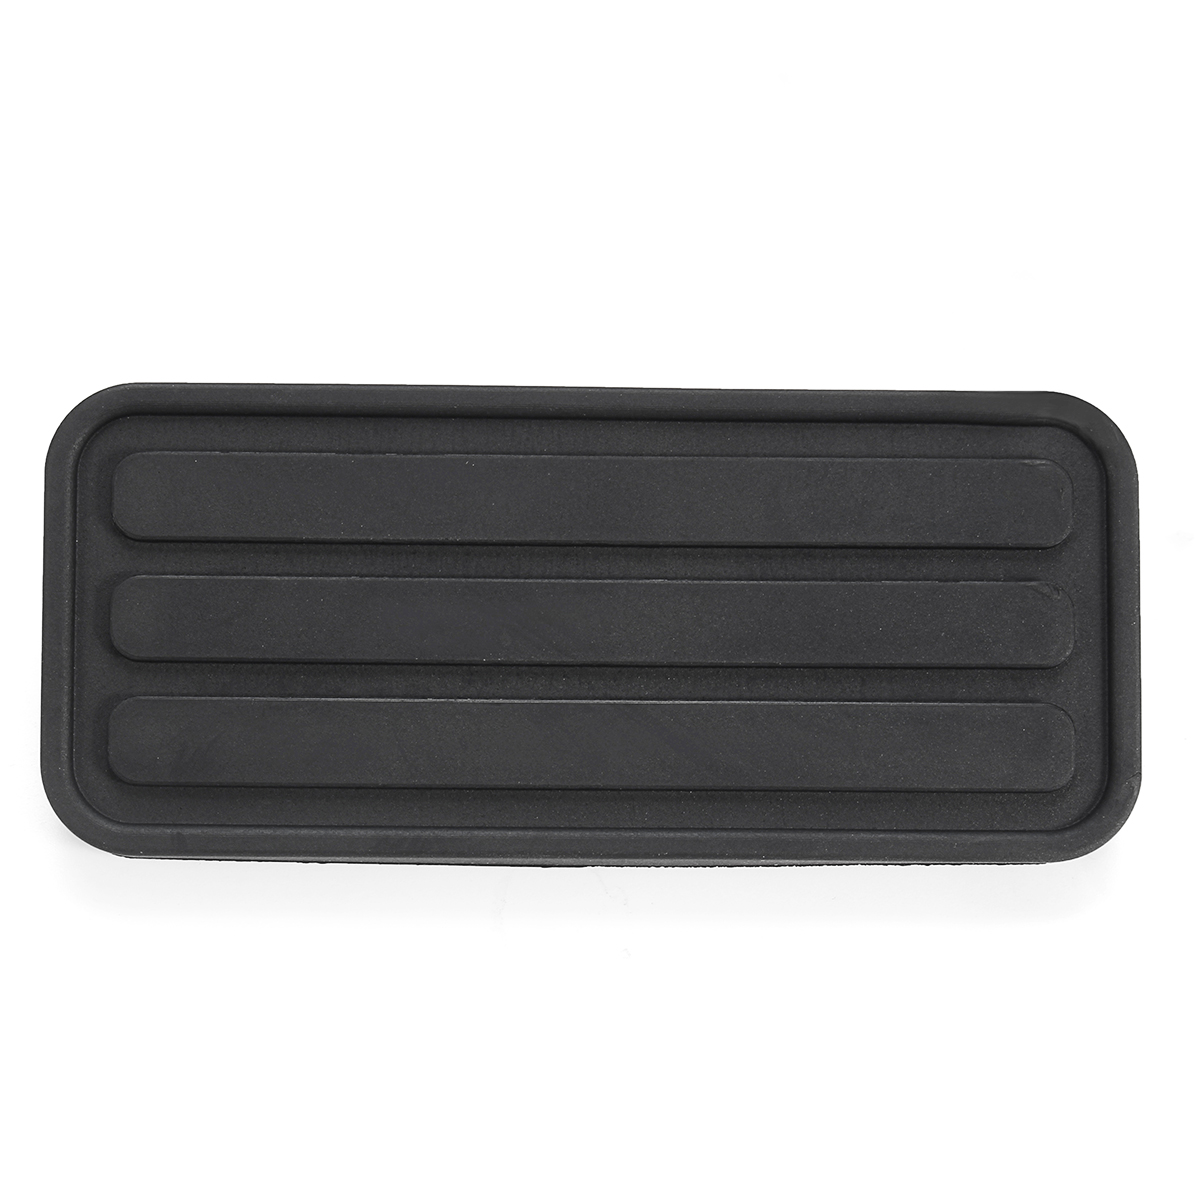 Black Rubber Brake Clutch Pedal Pad Covers Trans Vehicles For VW Transporter T4 Accelerator Gas 1990 - 2003 171721647